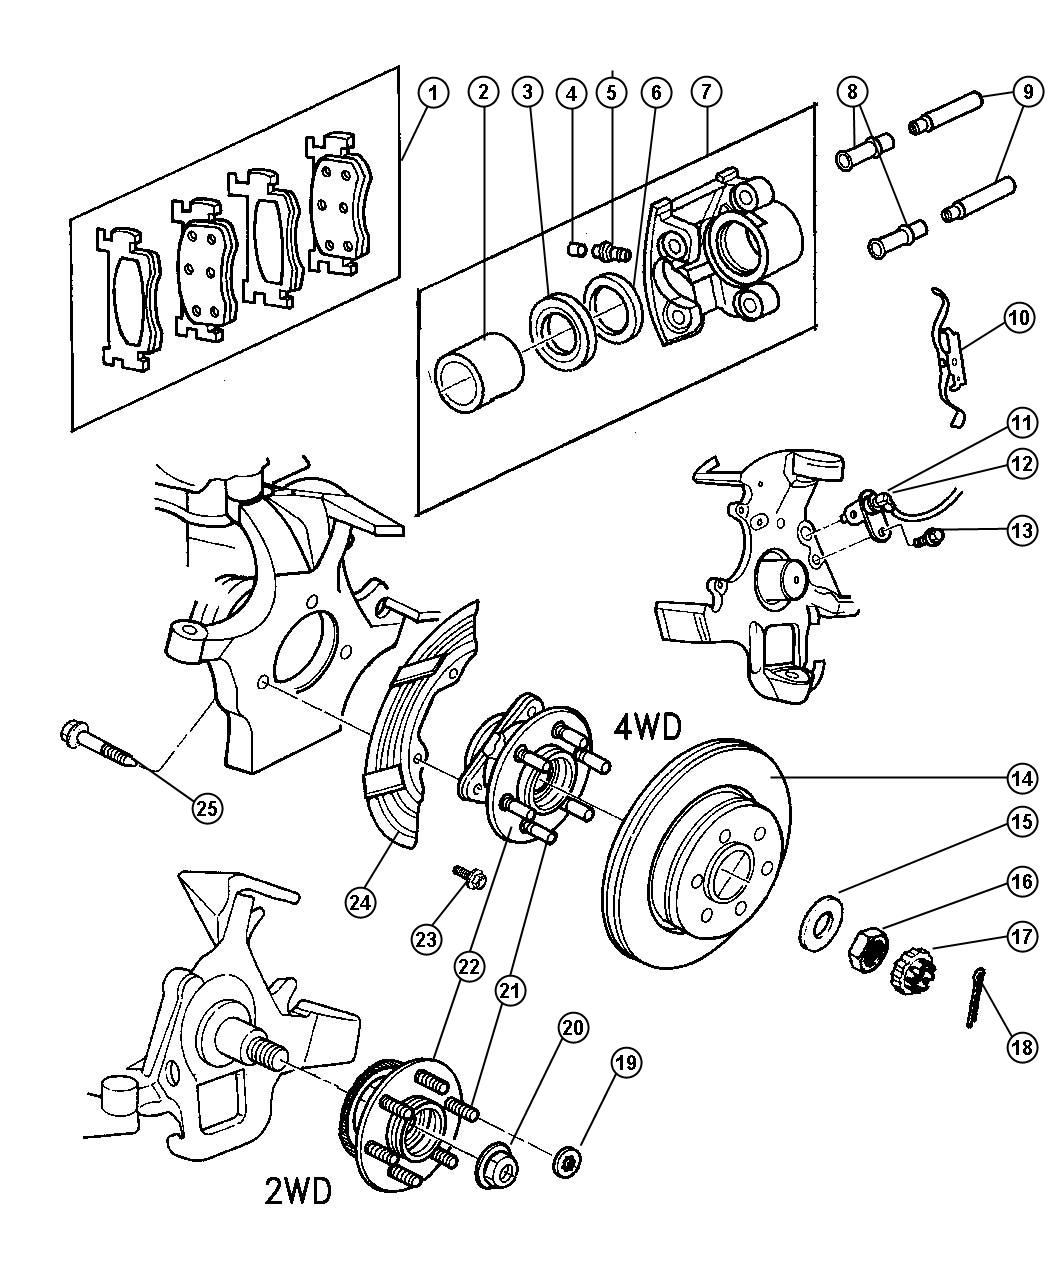 2001 dodge ram 1500 front axle diagram dodge 4x4 front